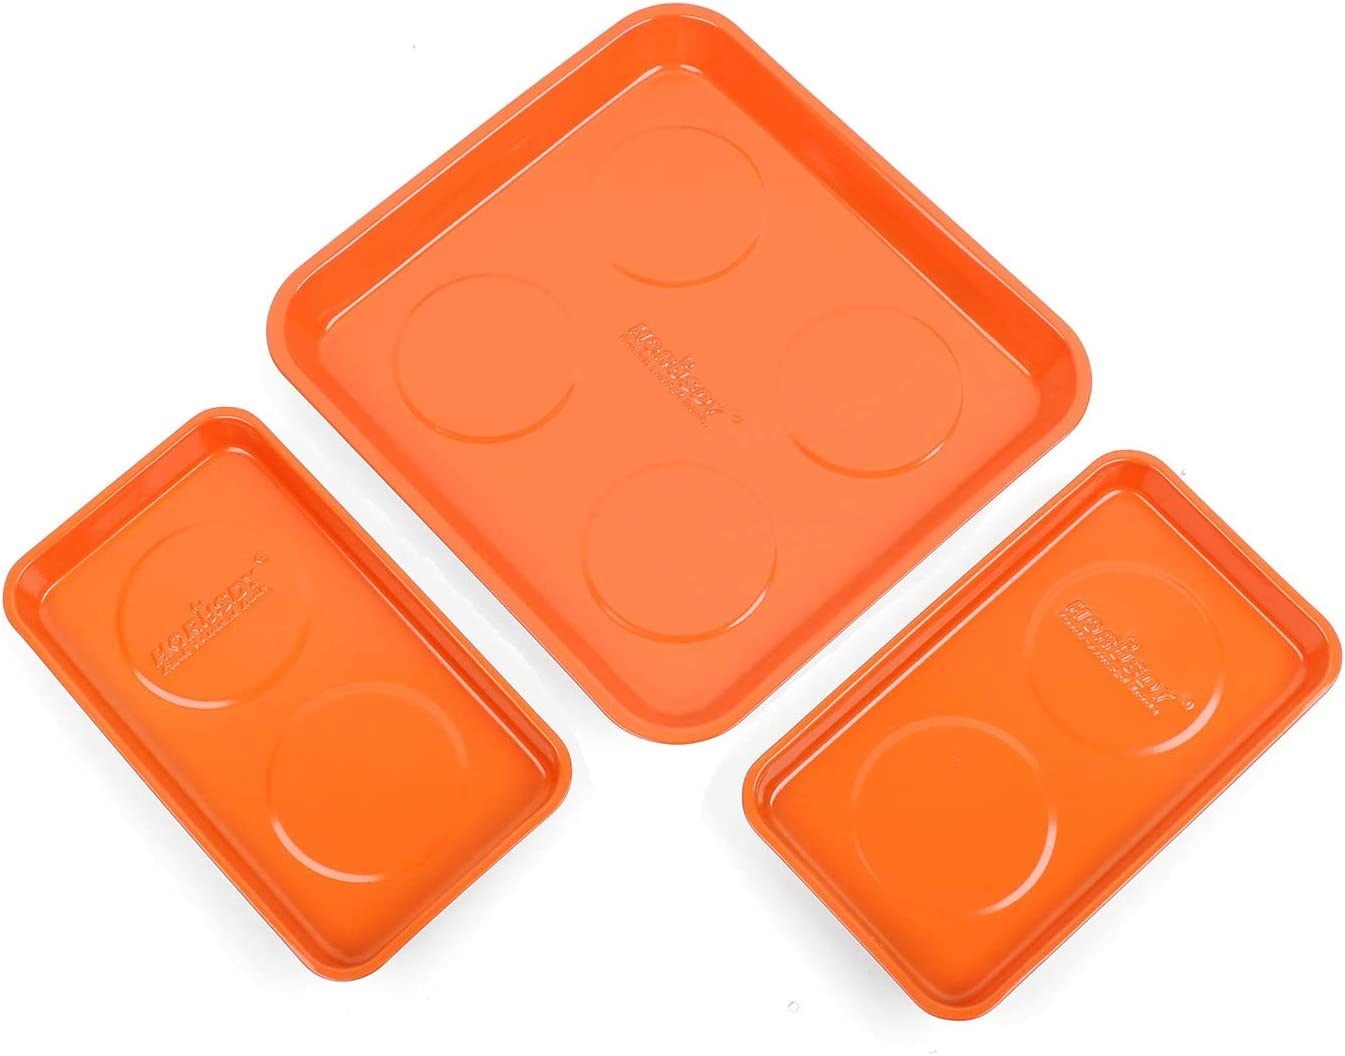 HORUSDY Cheap super special price 3-Piece Super Large Magnetic Max 70% OFF Stainless Set S Tray Parts